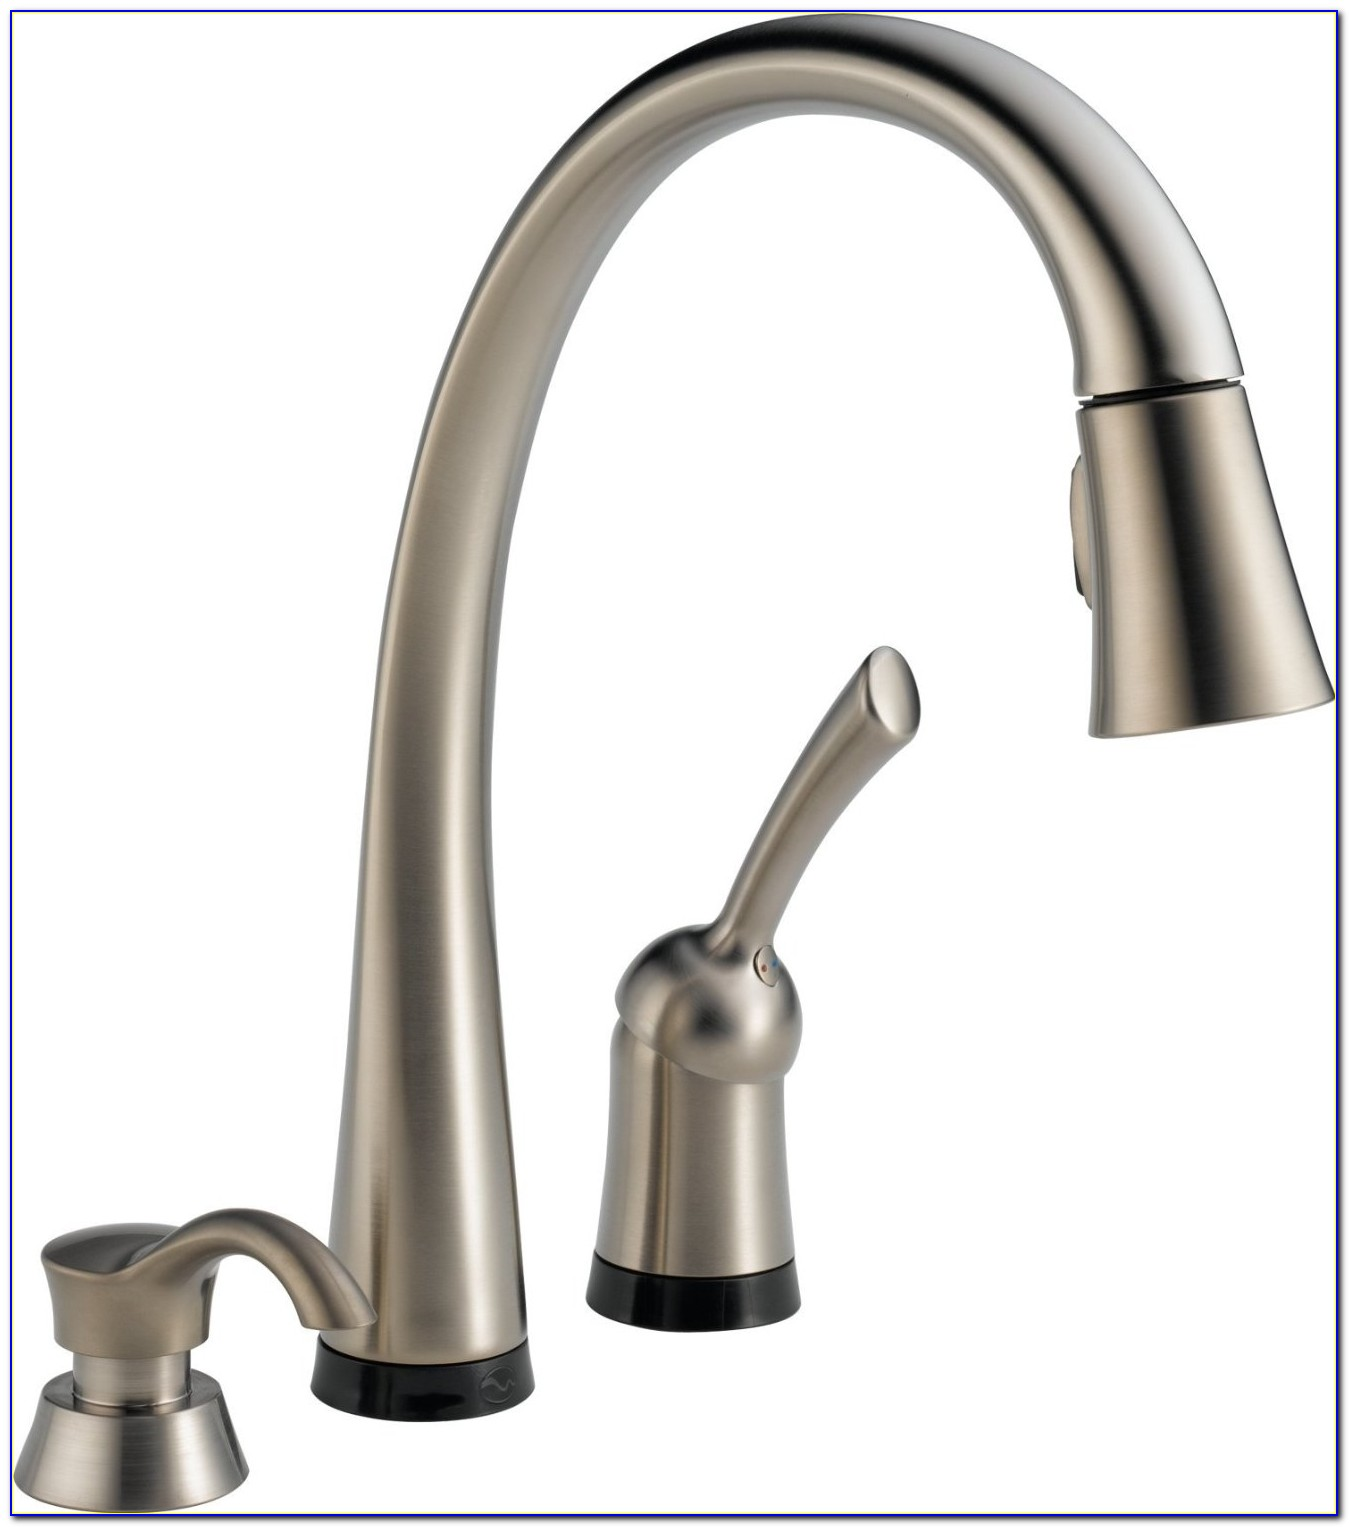 Best Three Hole Kitchen Faucets Best Three Hole Kitchen Faucets Kitchen Three Hole Kitchen Faucet With Regard To Brilliant 1322 X 1500